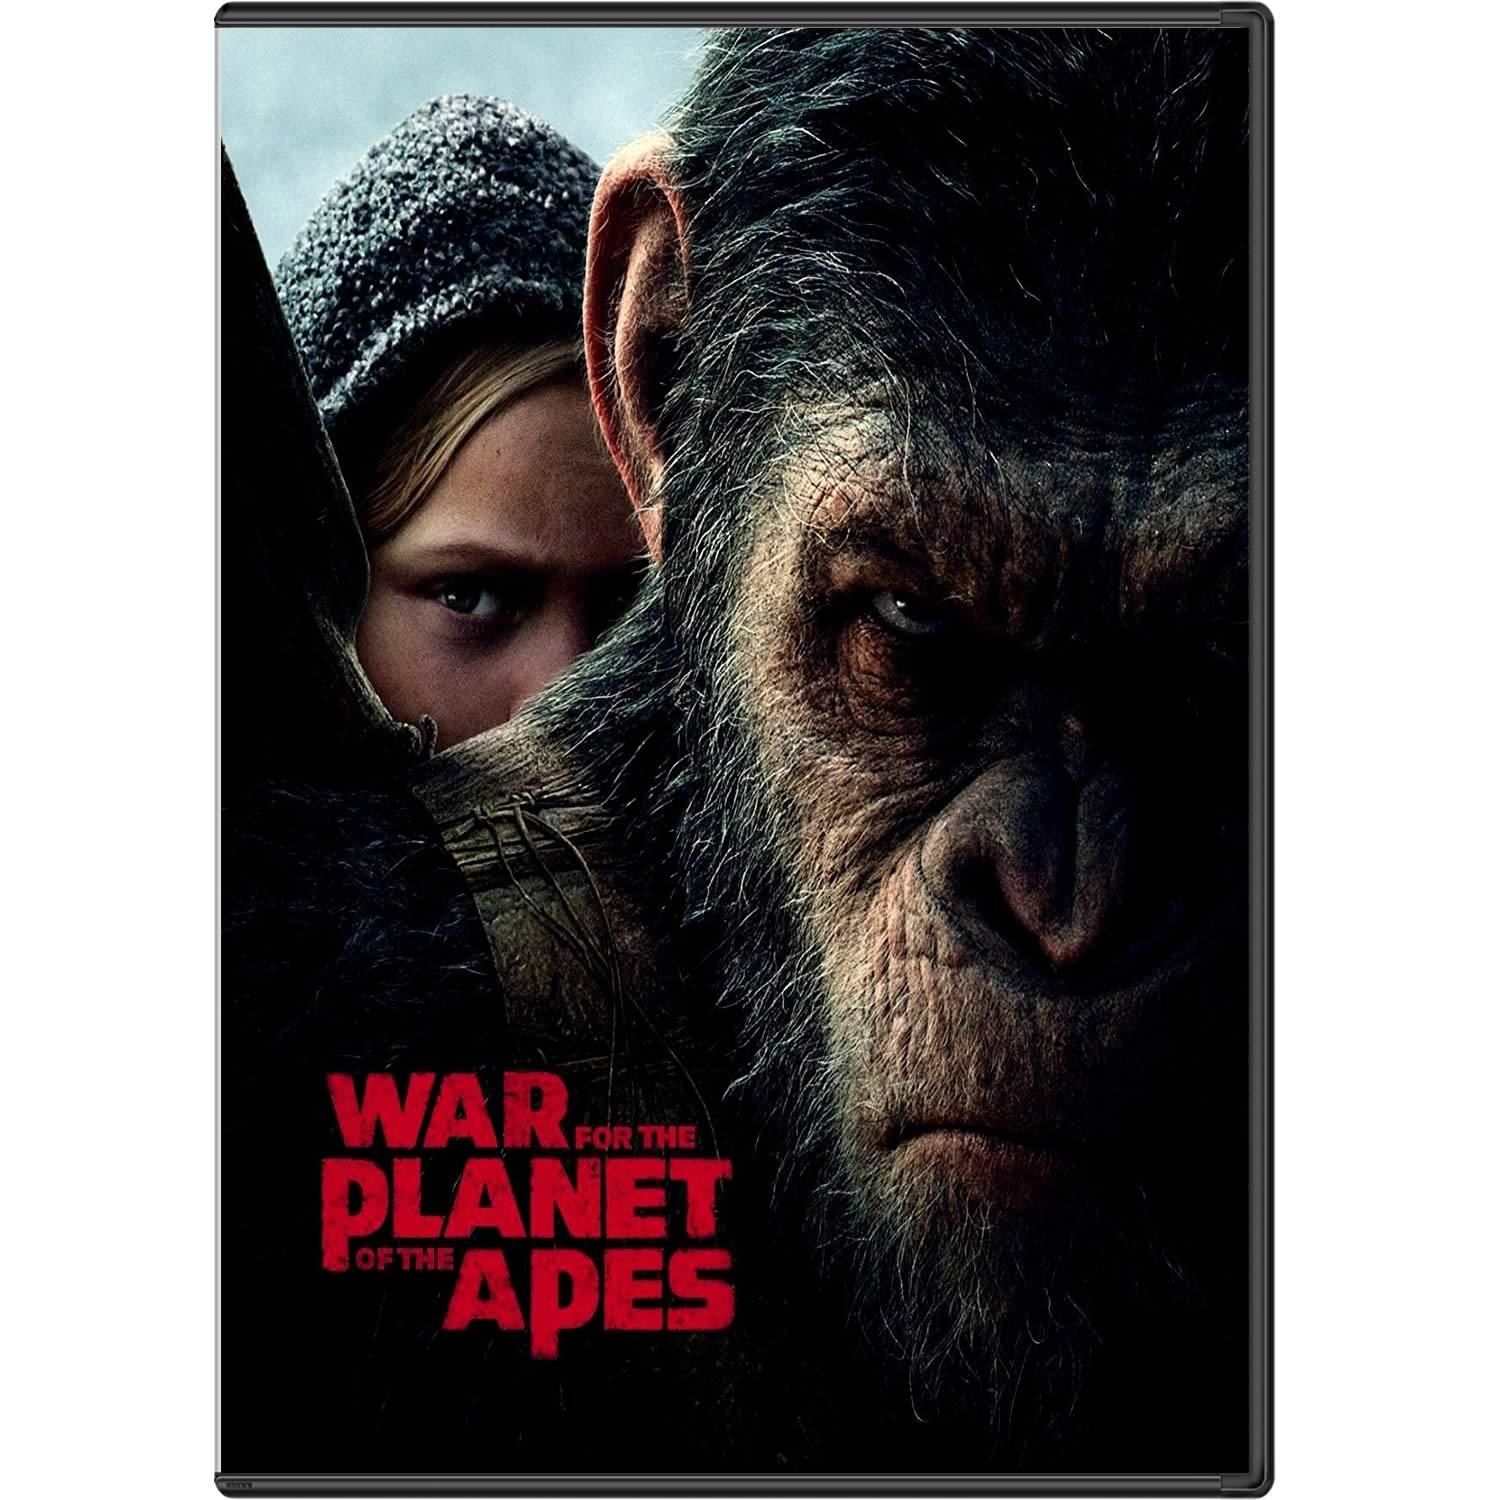 WAR FOR THE PLANET OF THE APES - Ο ΠΛΑΝΗΤΗΣ ΤΩΝ ΠΙΘΗΚΩΝ: Η ΣΥΓΚΡΟΥΣΗ (DVD)